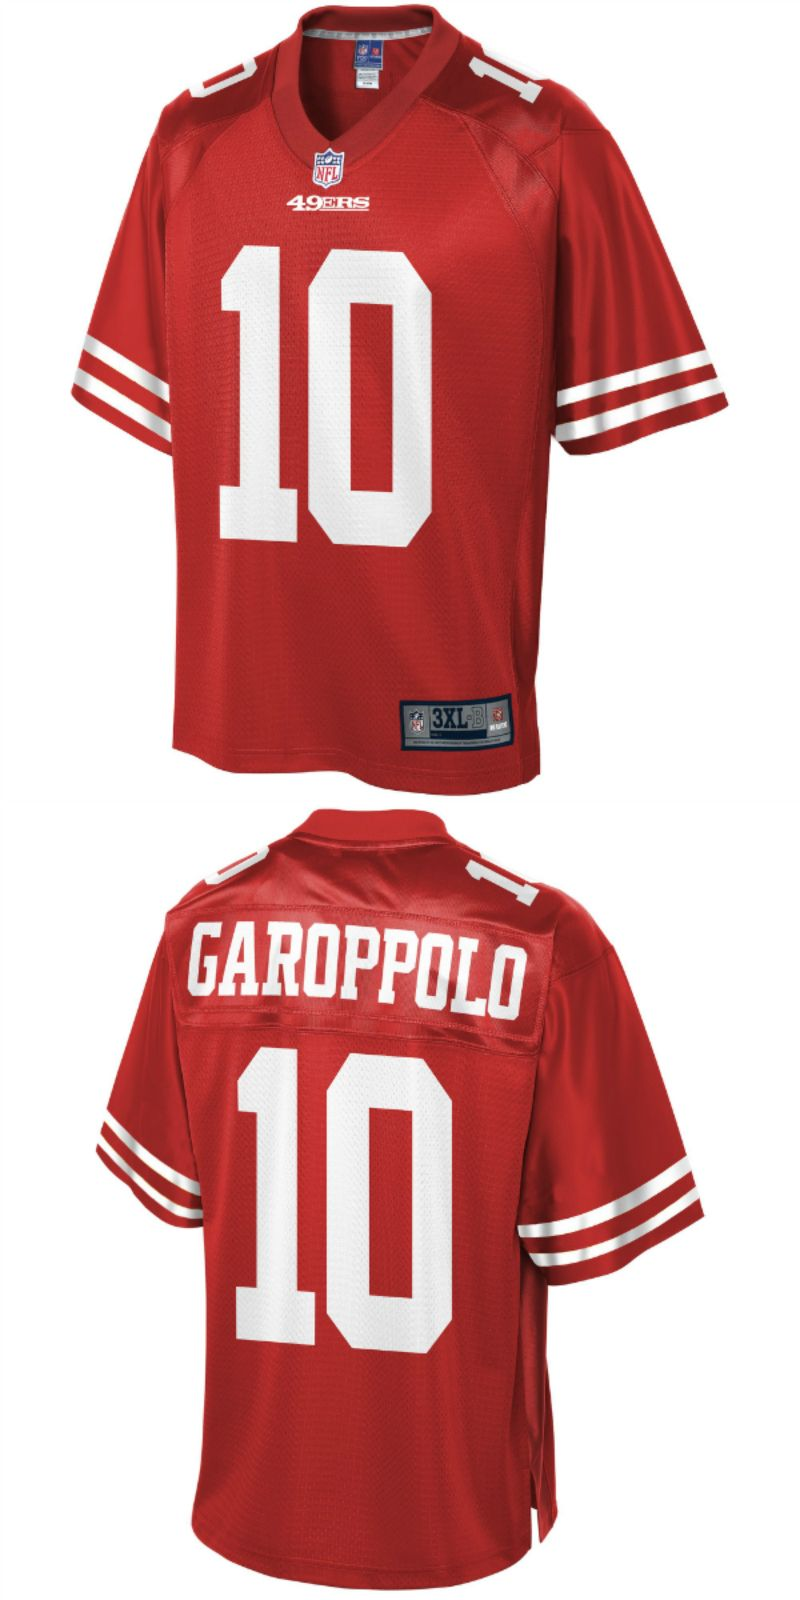 timeless design afa4d a0966 UP TO 70% OFF. Jimmy Garoppolo San Francisco 49ers NFL Pro ...